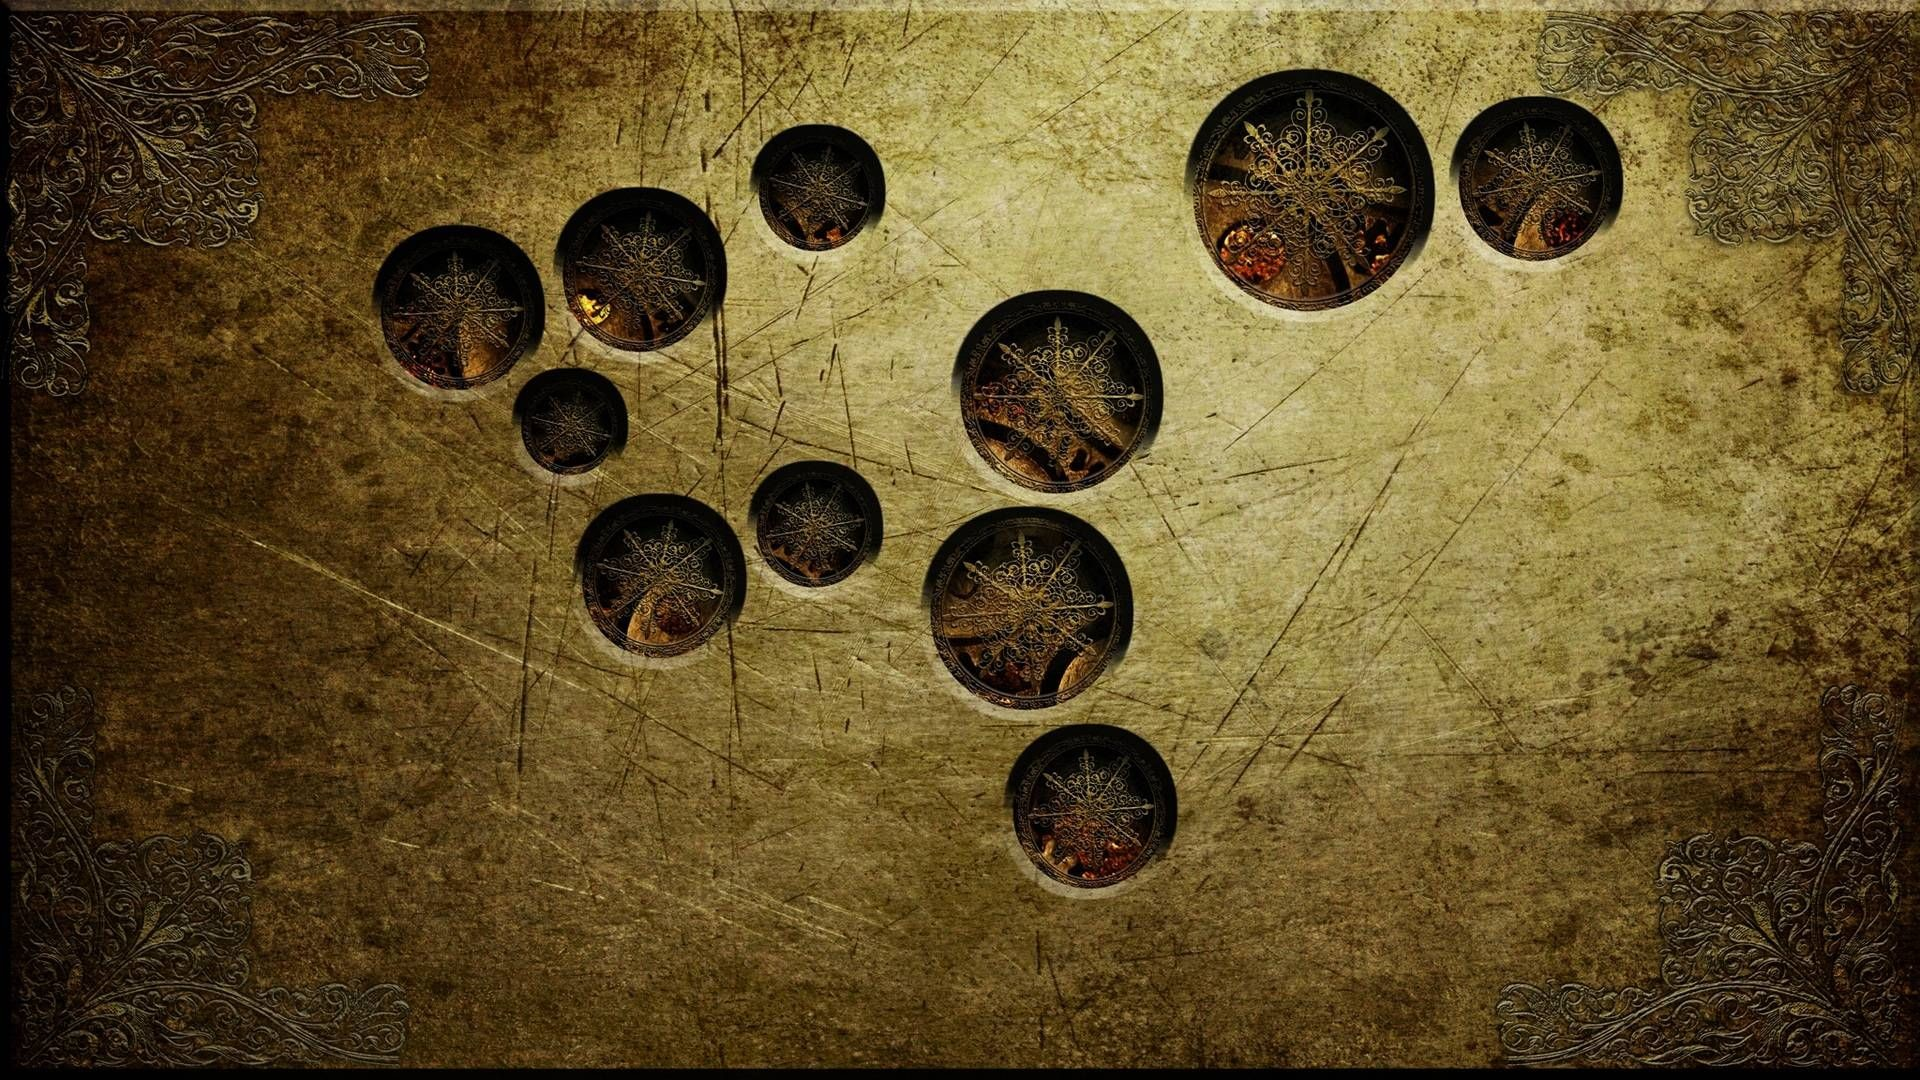 Res: 1920x1080, Steampunk Wallpaper Hd Images & Pictures - Becuo